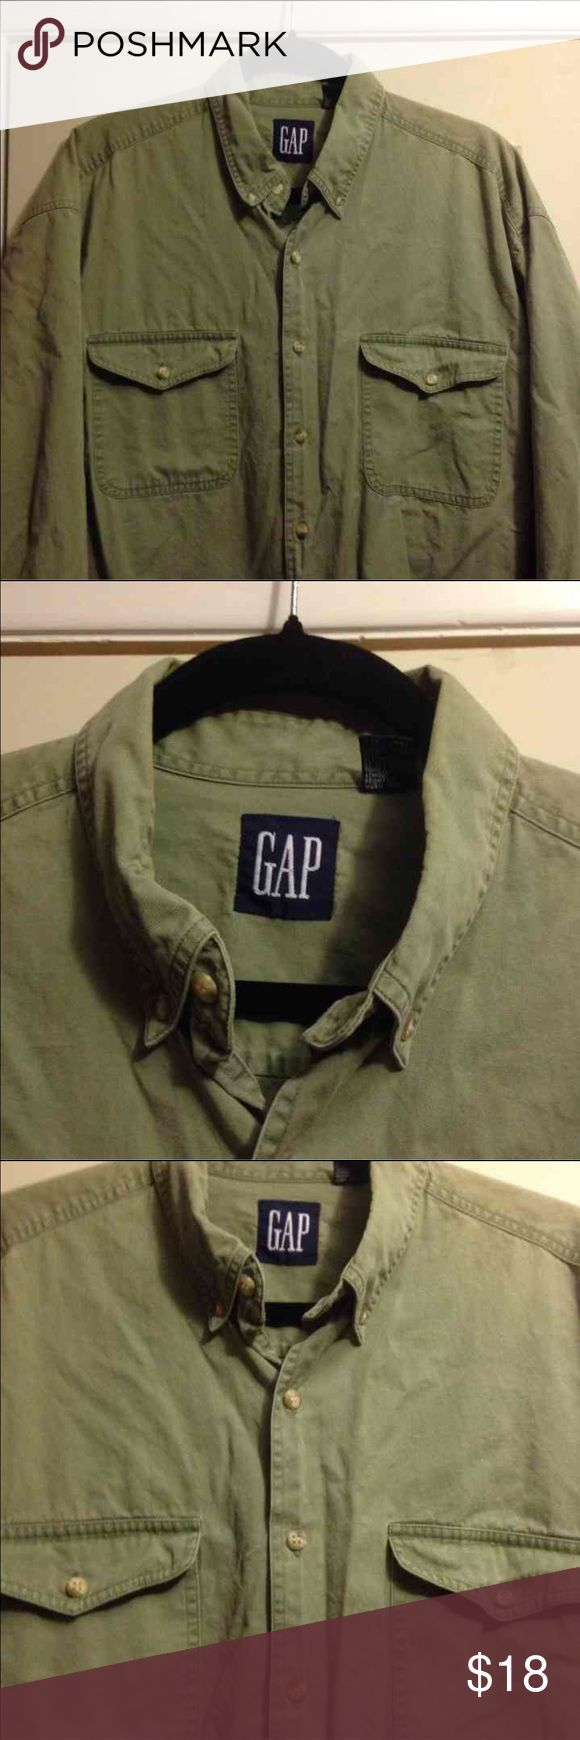 Gap Mens shirt Gap two pocket button down shirt. Missing button on right sleeve. See last picture for detail. Pricing reflects this. Size XL Gap Shirts Casual Button Down Shirts